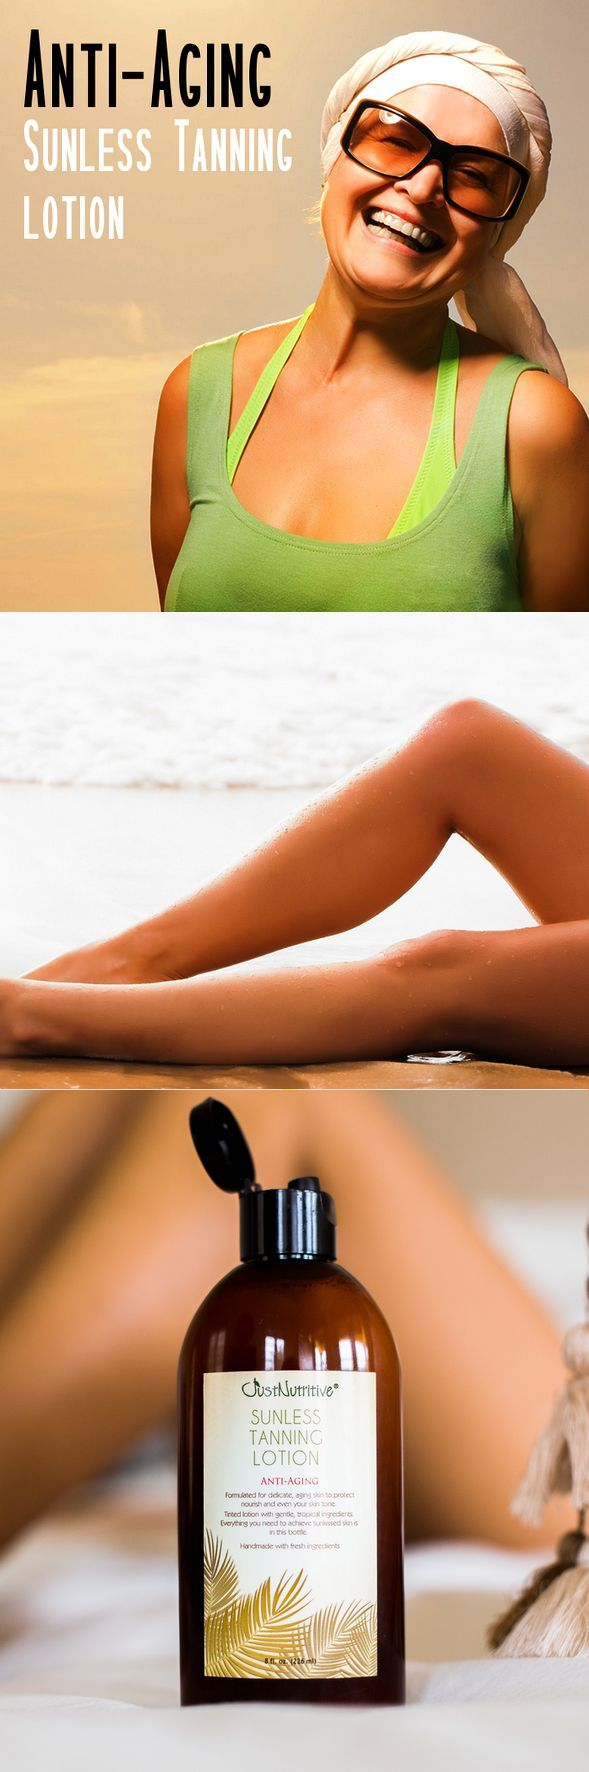 Sunless Tanning - Anti-Aging. - A beautiful sunless tan without the use of harmful chemical ingredients. You Be tan in a natural way!